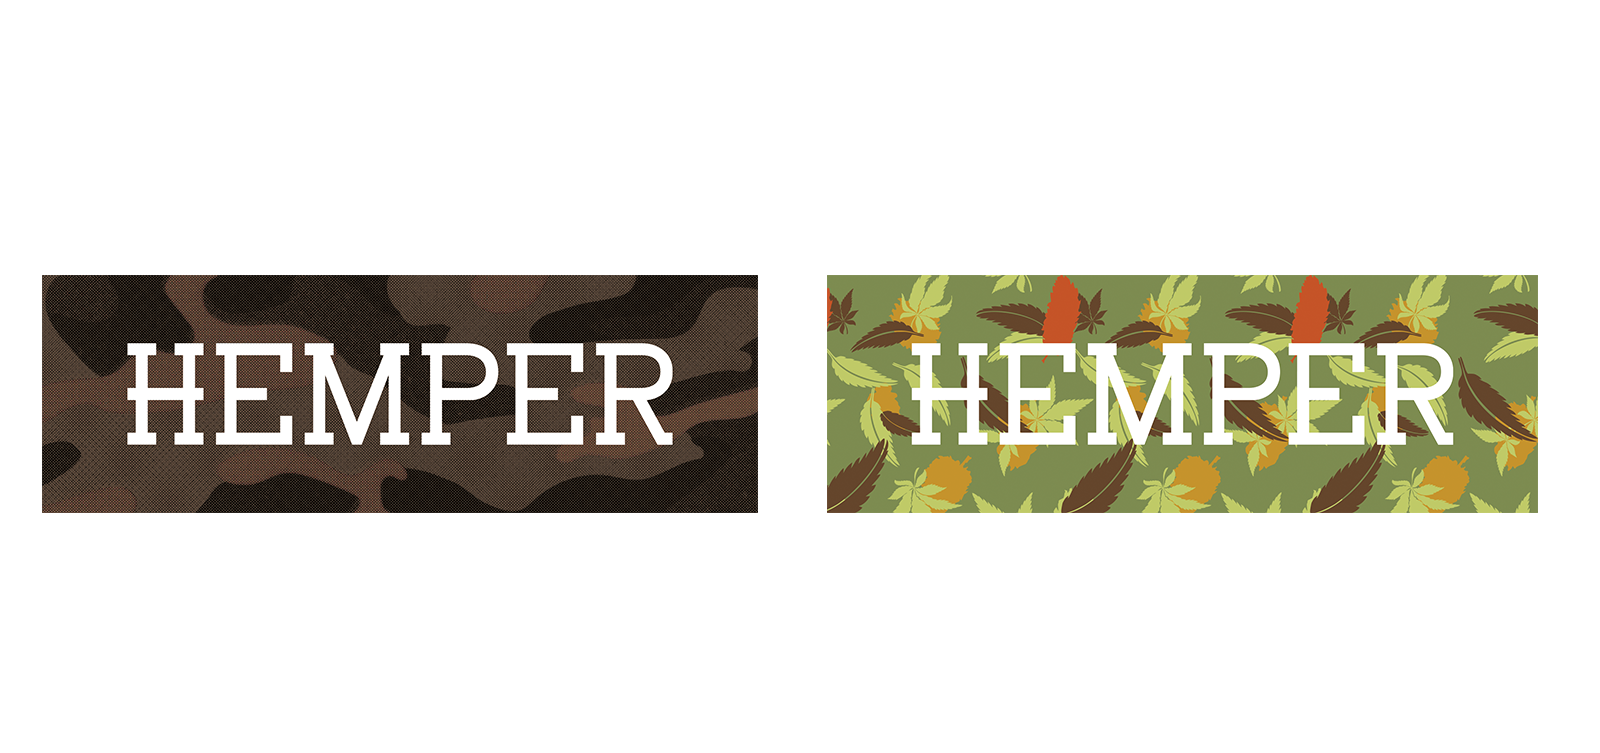 HEMPER Fall Slap Stickers